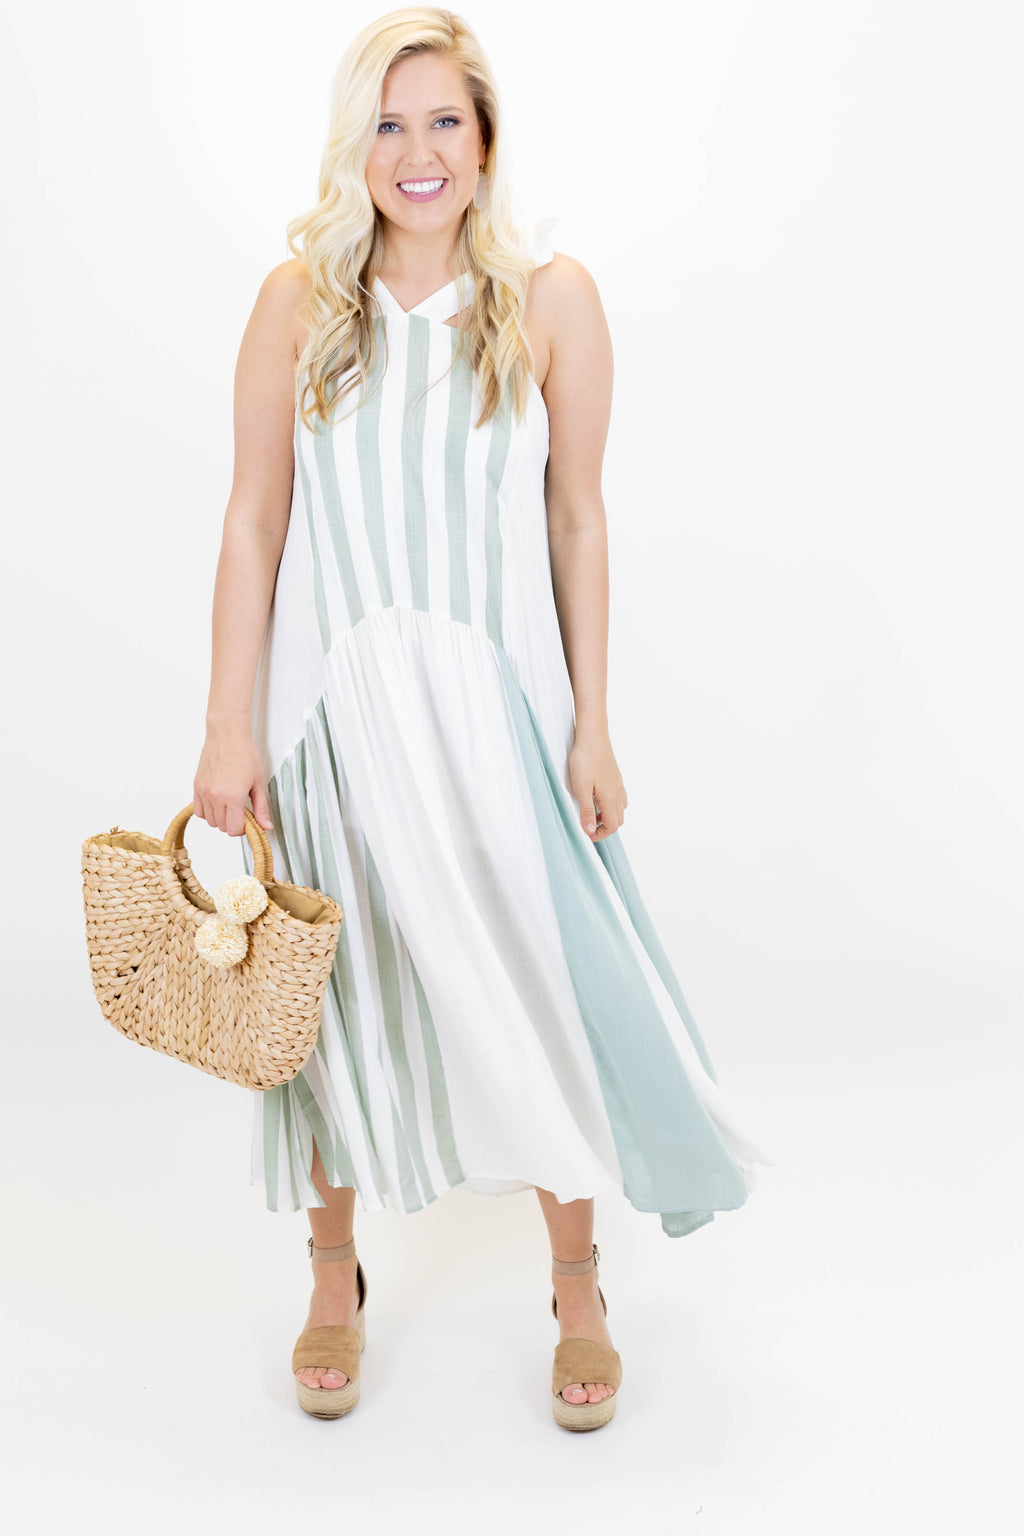 Sleeveless Strappy White and Green Maxi Dress with Side Slits